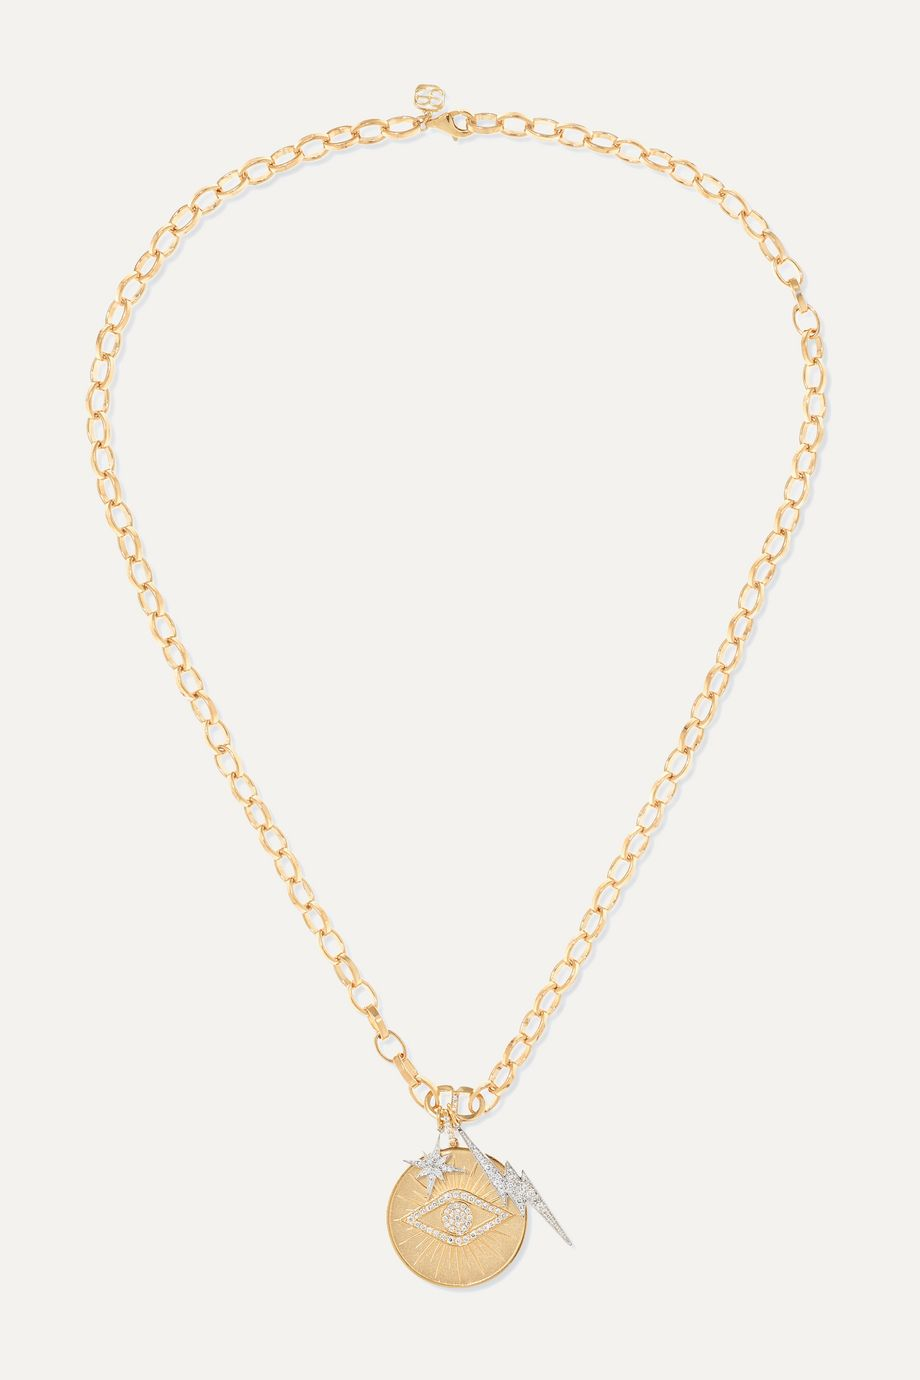 Sydney Evan 14-karat yellow and white gold diamond necklace